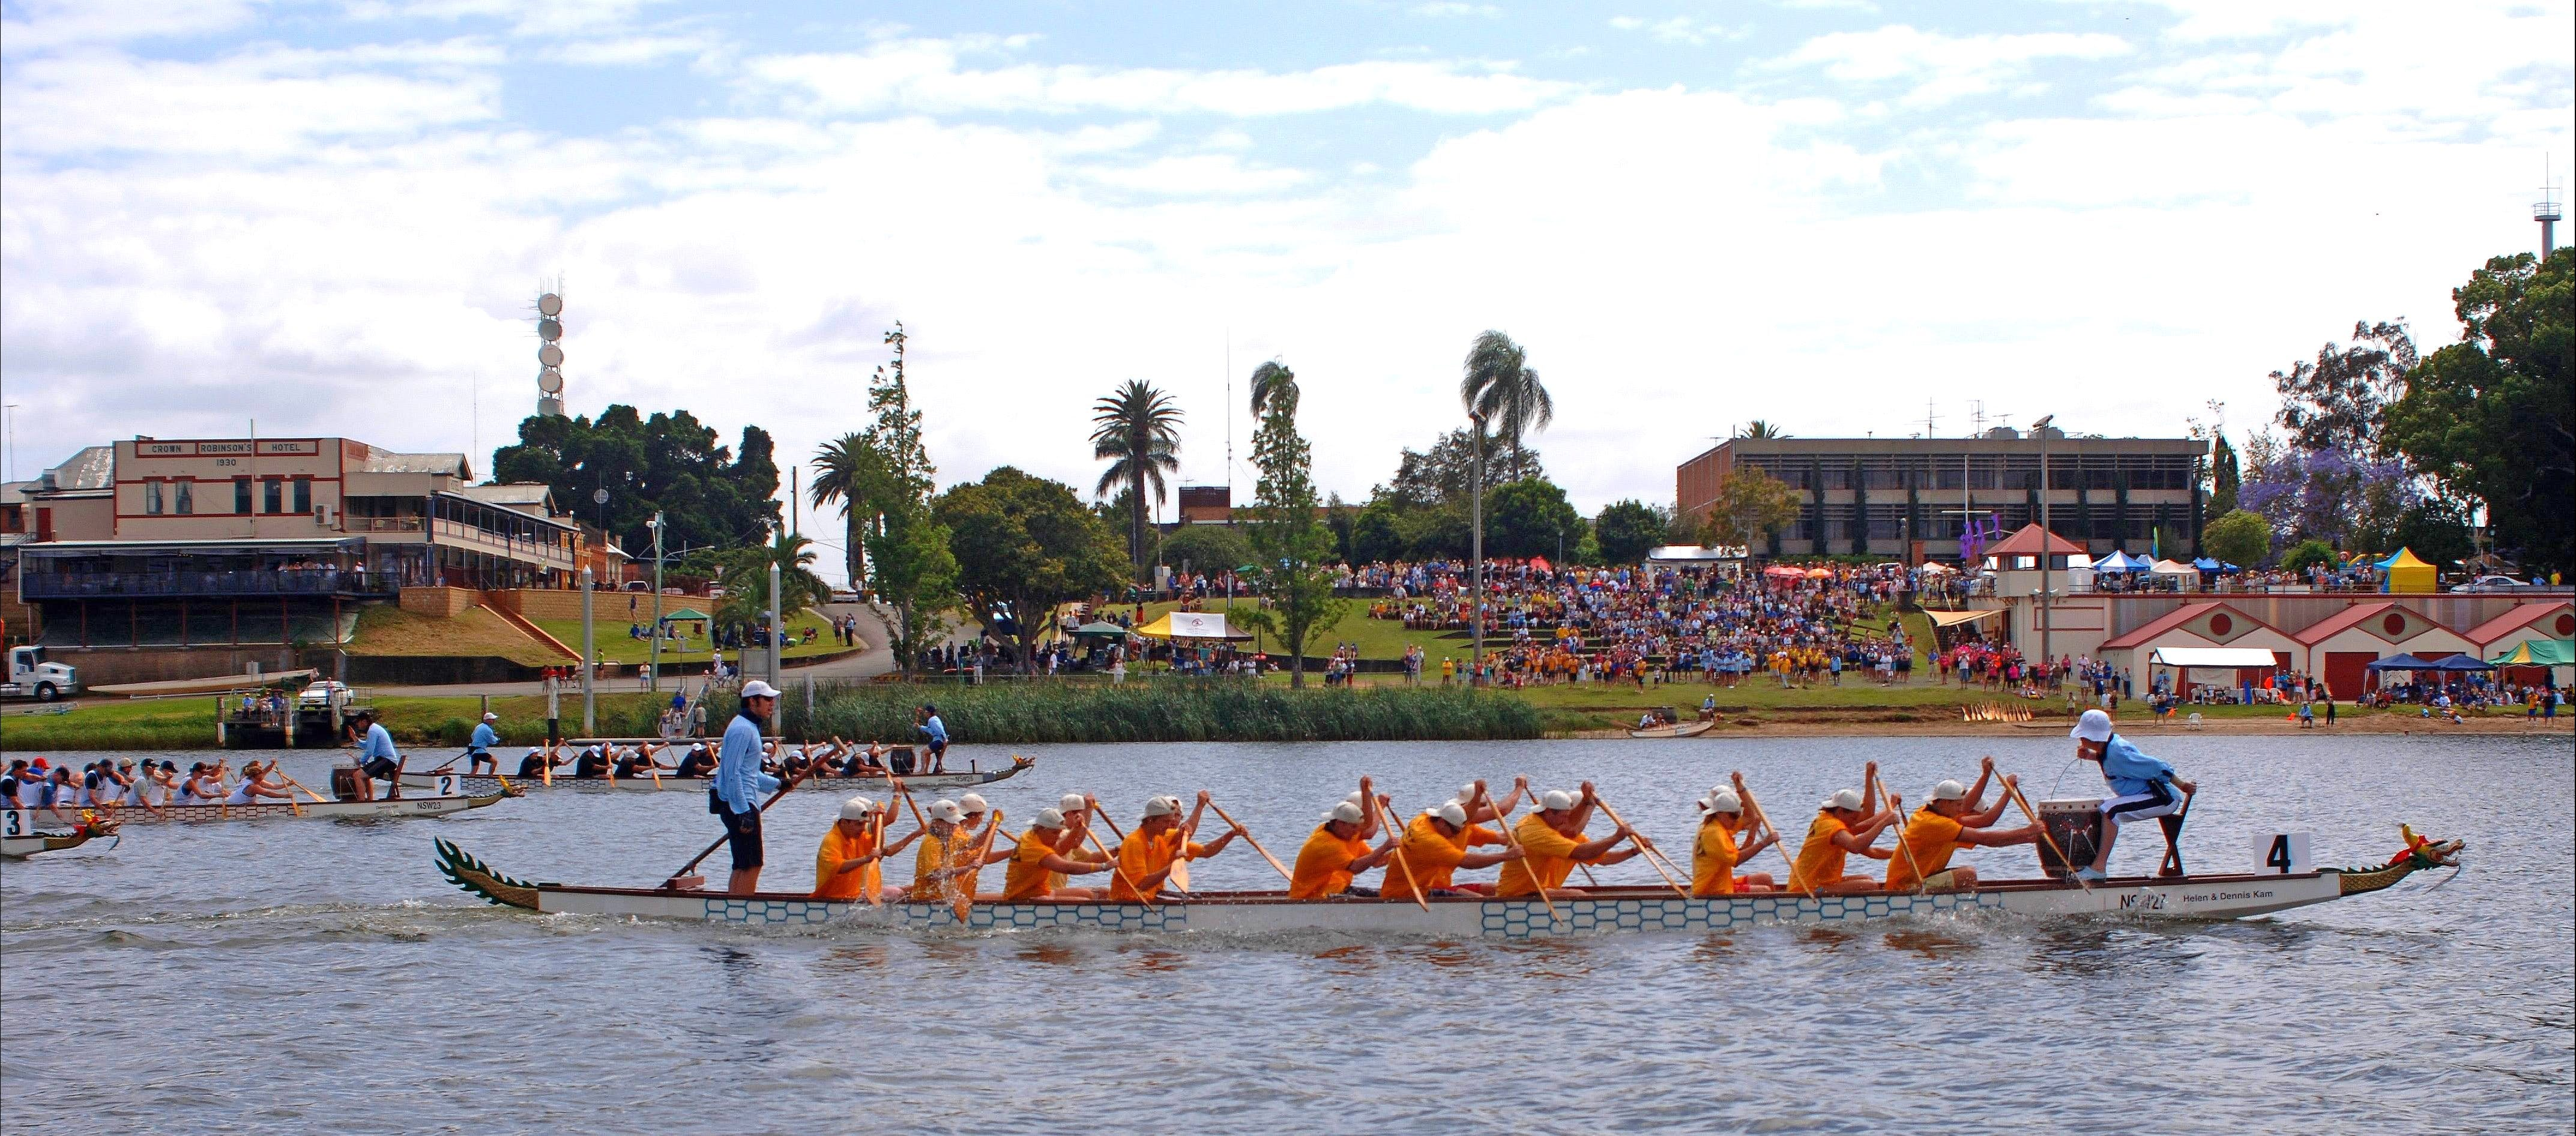 Jacaranda Dragon Boat Races - Accommodation Search